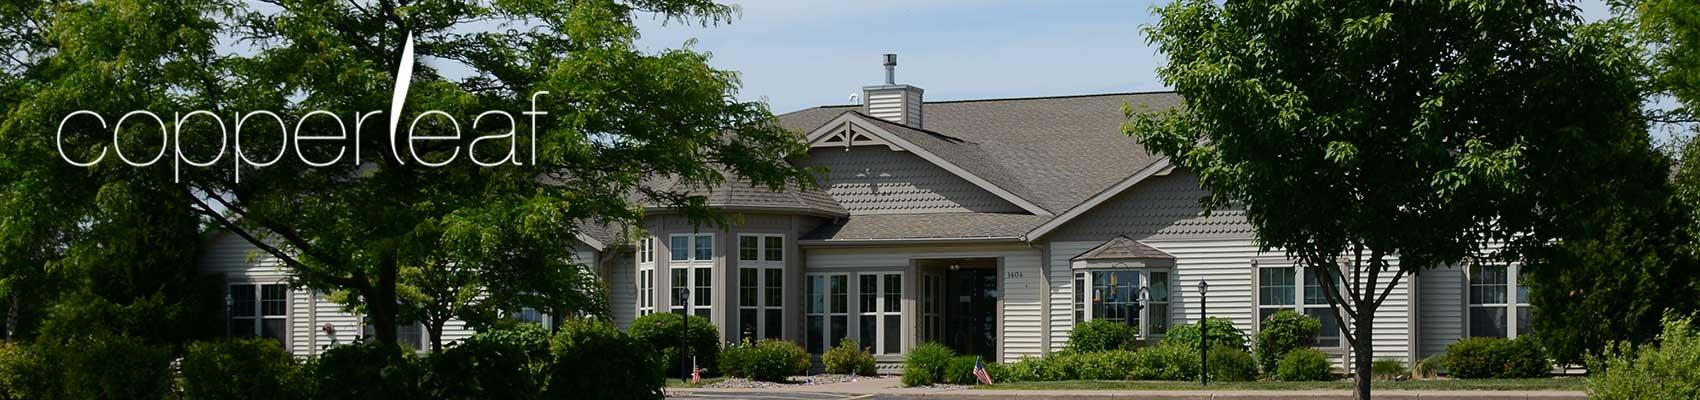 Assisted Living in Rosendale Wisconsin Fond du Lac County